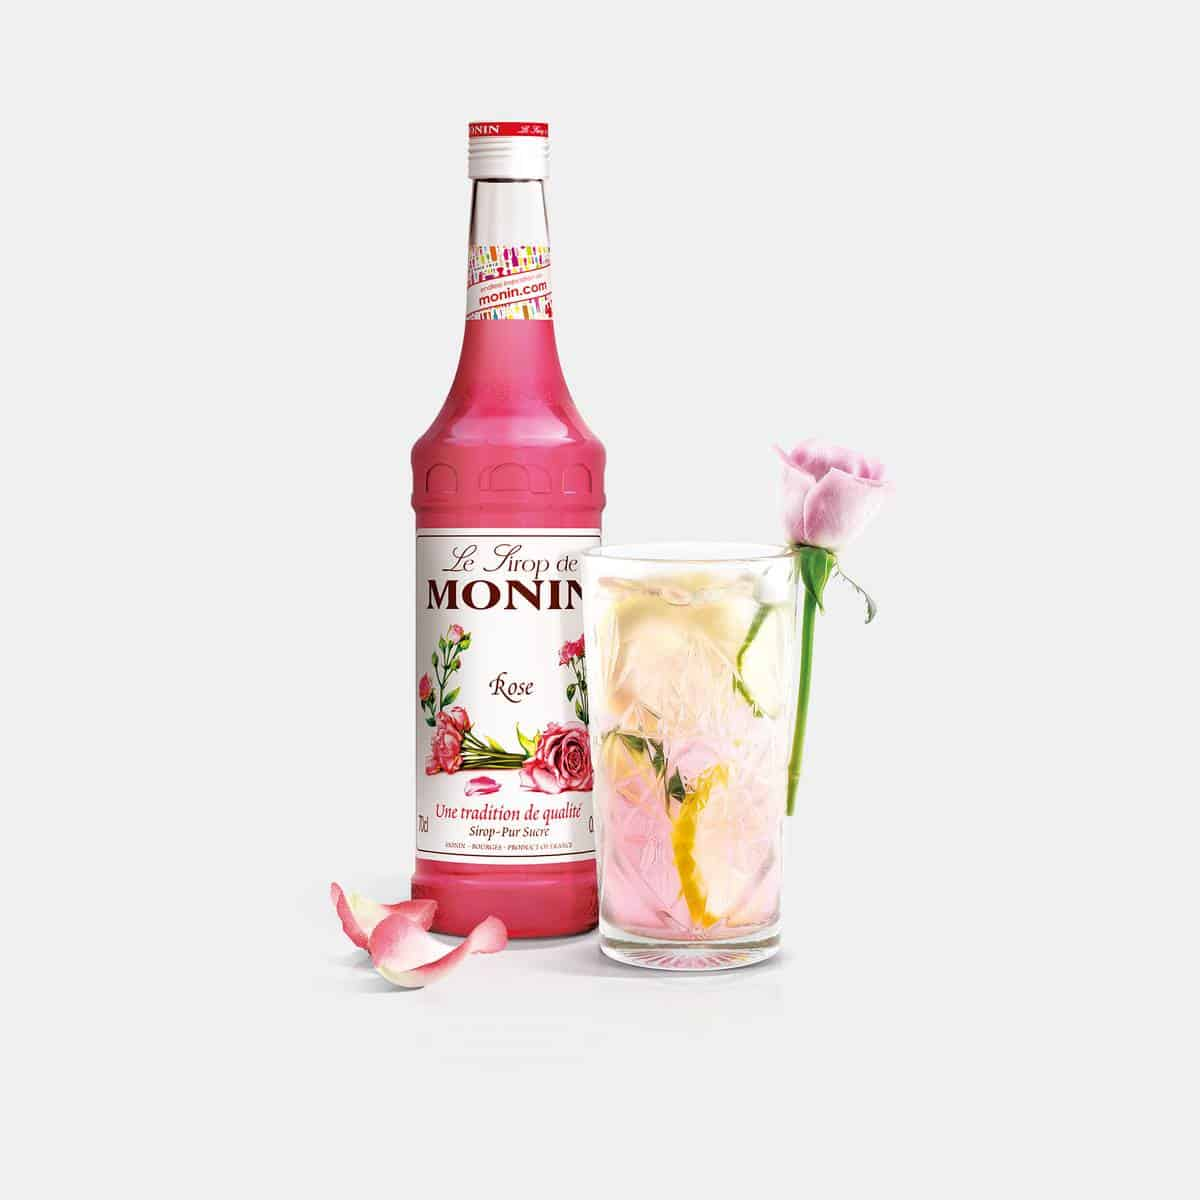 Monin 700ml Rose Syrup Glass Bottle with Drink